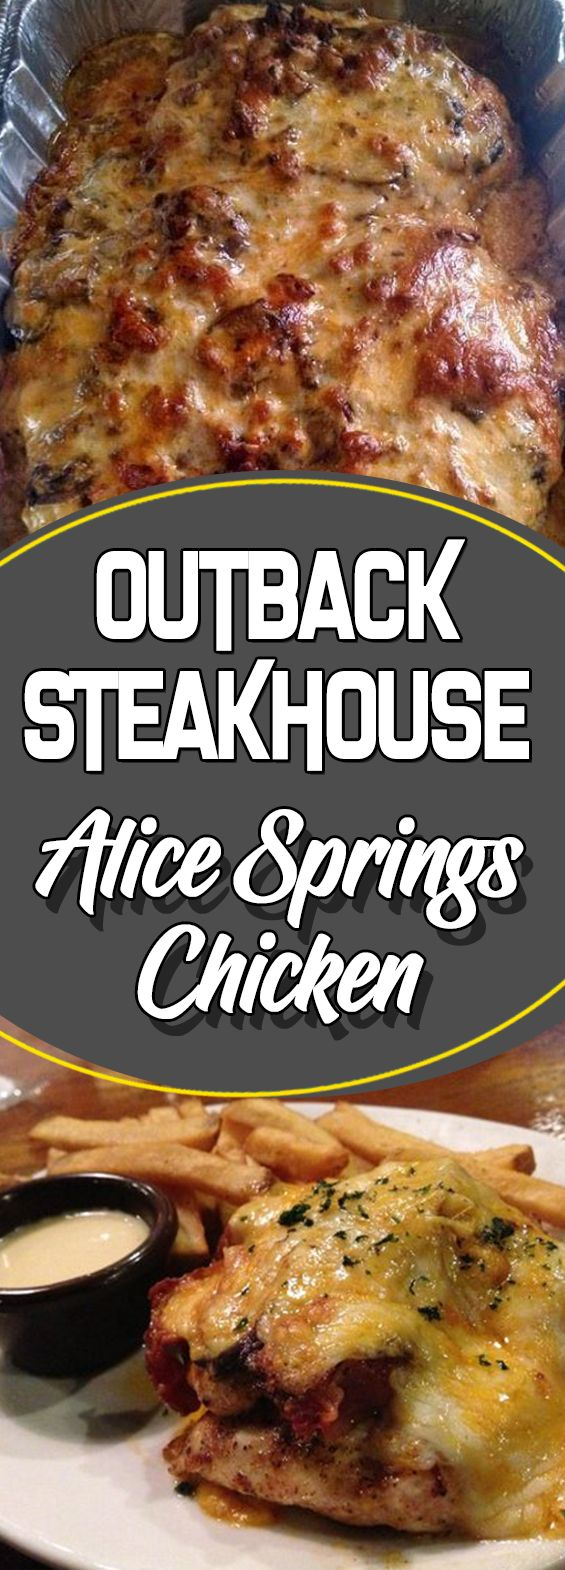 Outback Steakhouse Alice Springs Chicken #chickendinner #slowcooker #chicken  #chickens #chickenrecipes #weightlossrecipes